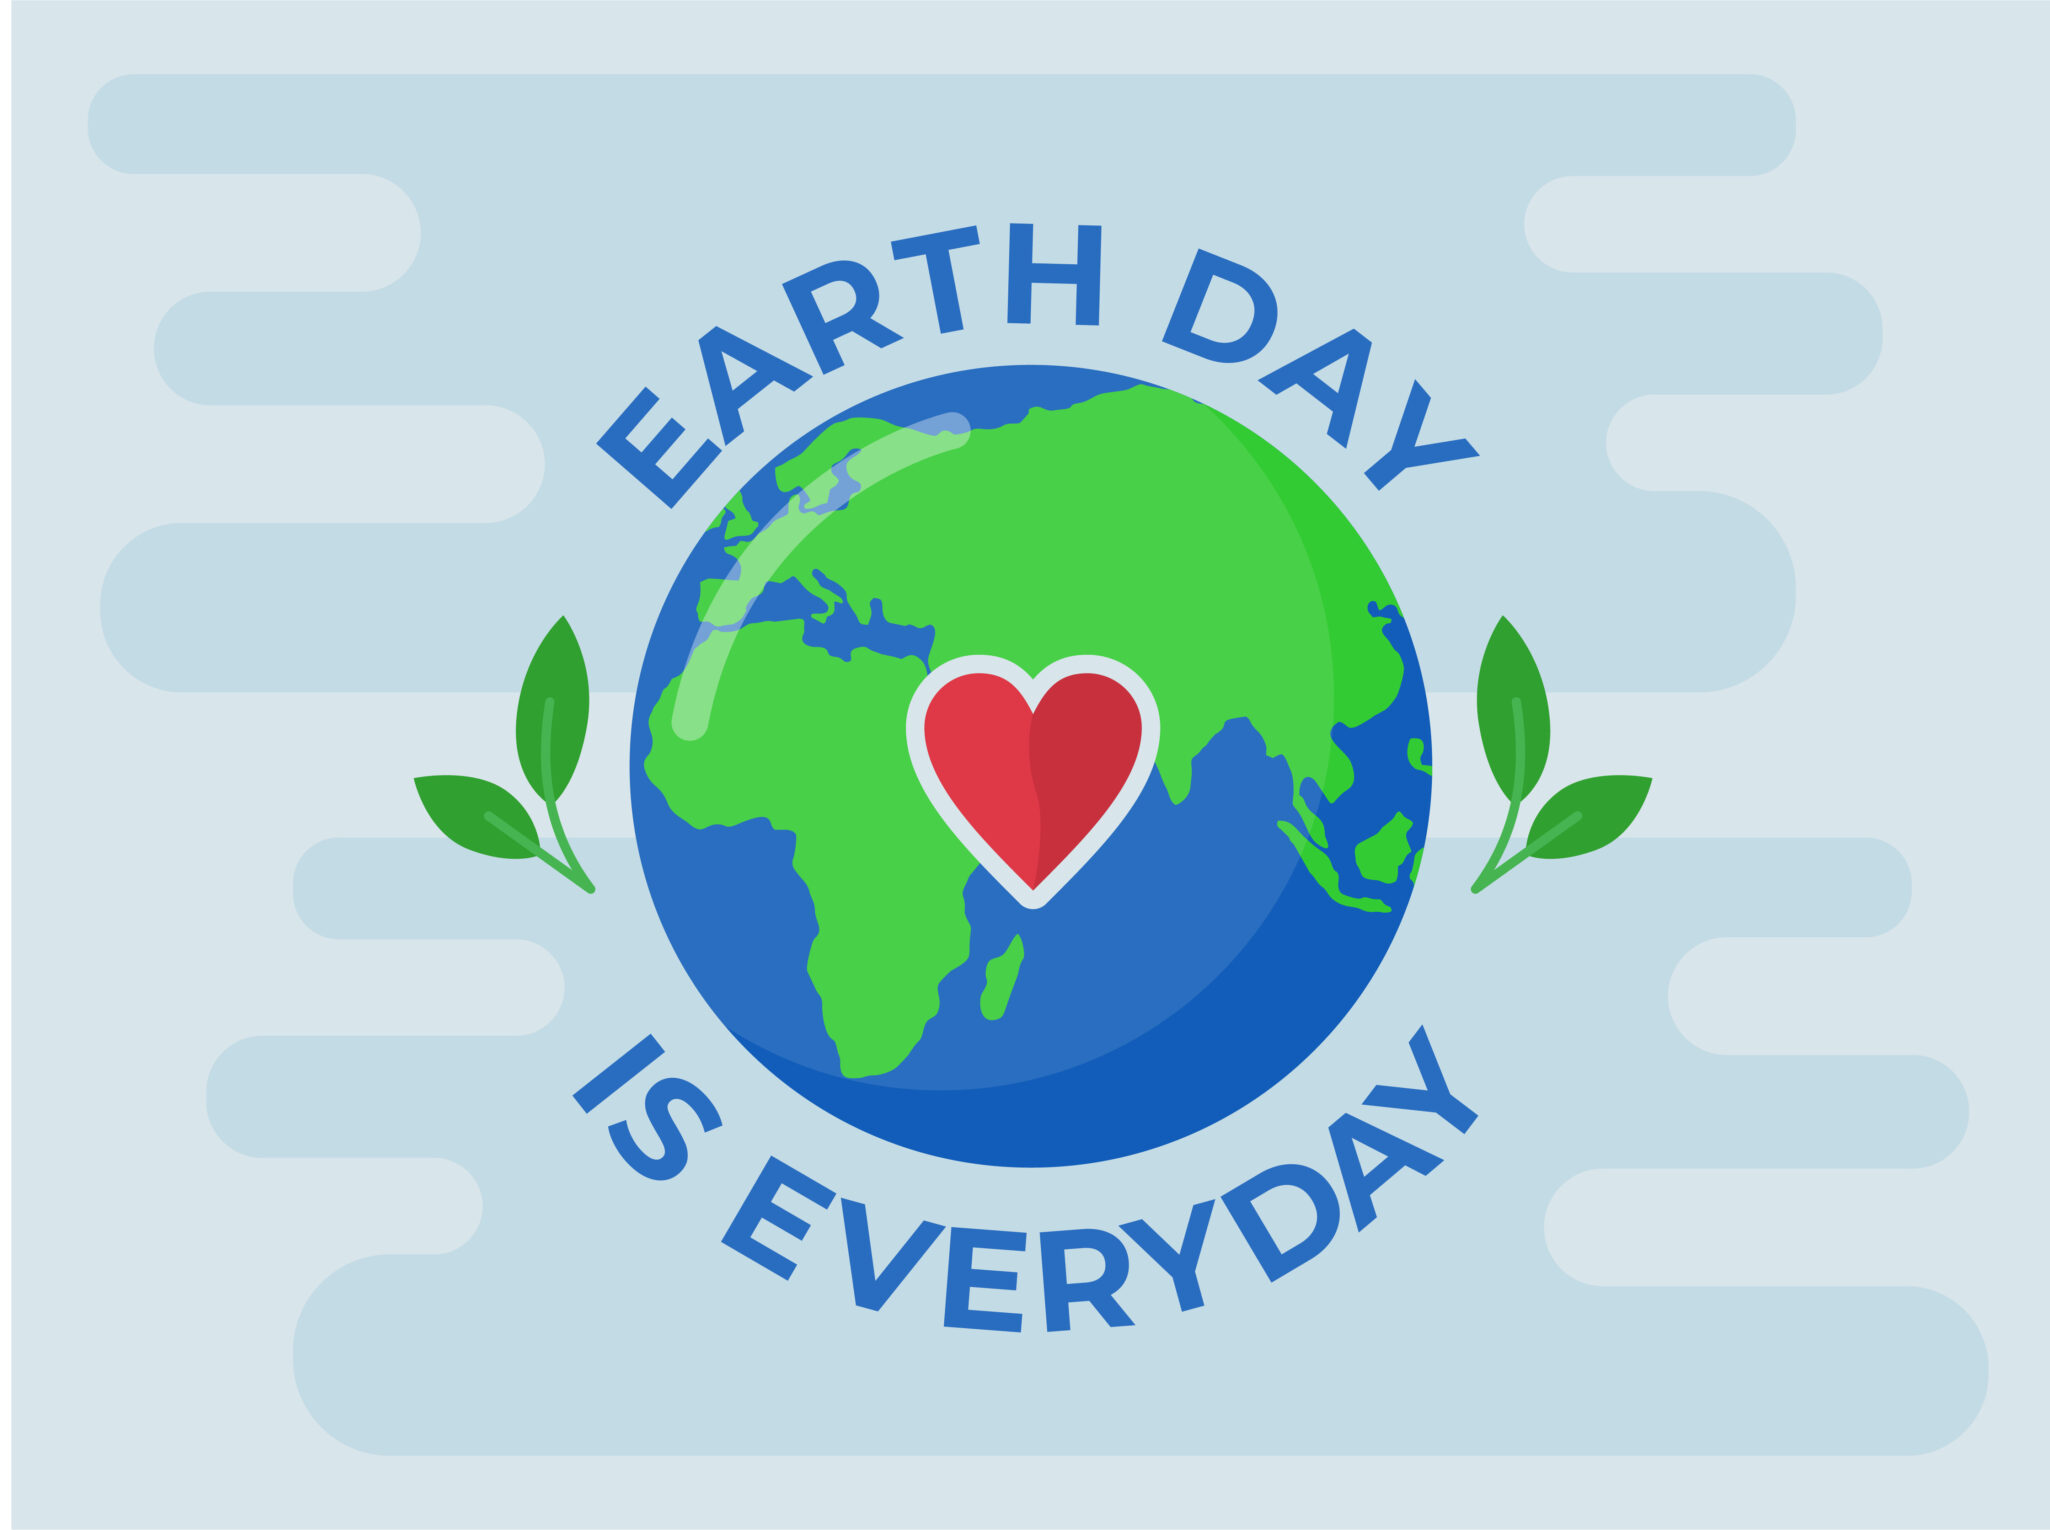 Happy Earth Celebration!